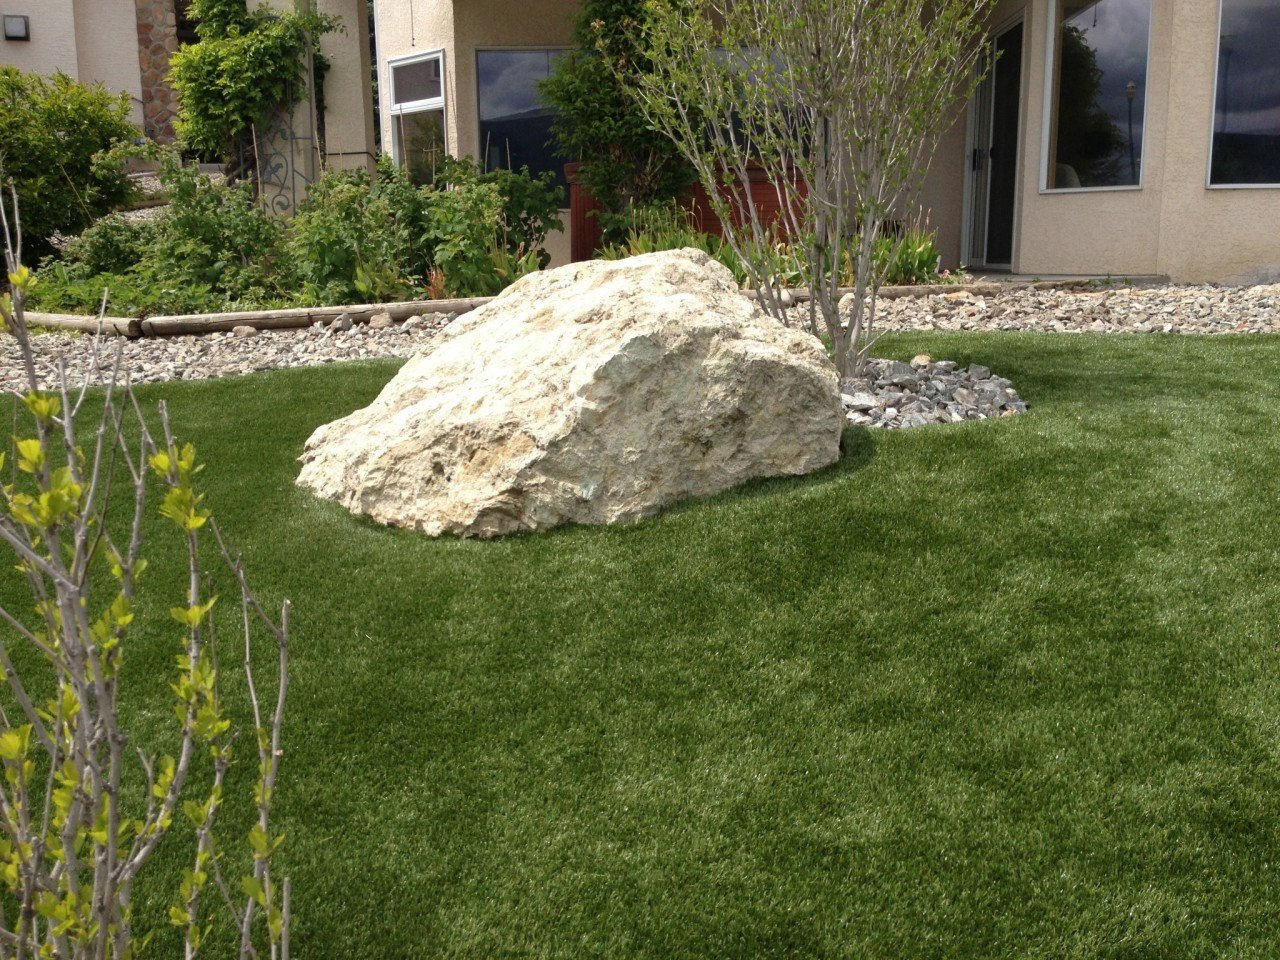 Artificial Grass & Turf | Synthetic Turf International | Soft Lawn Products